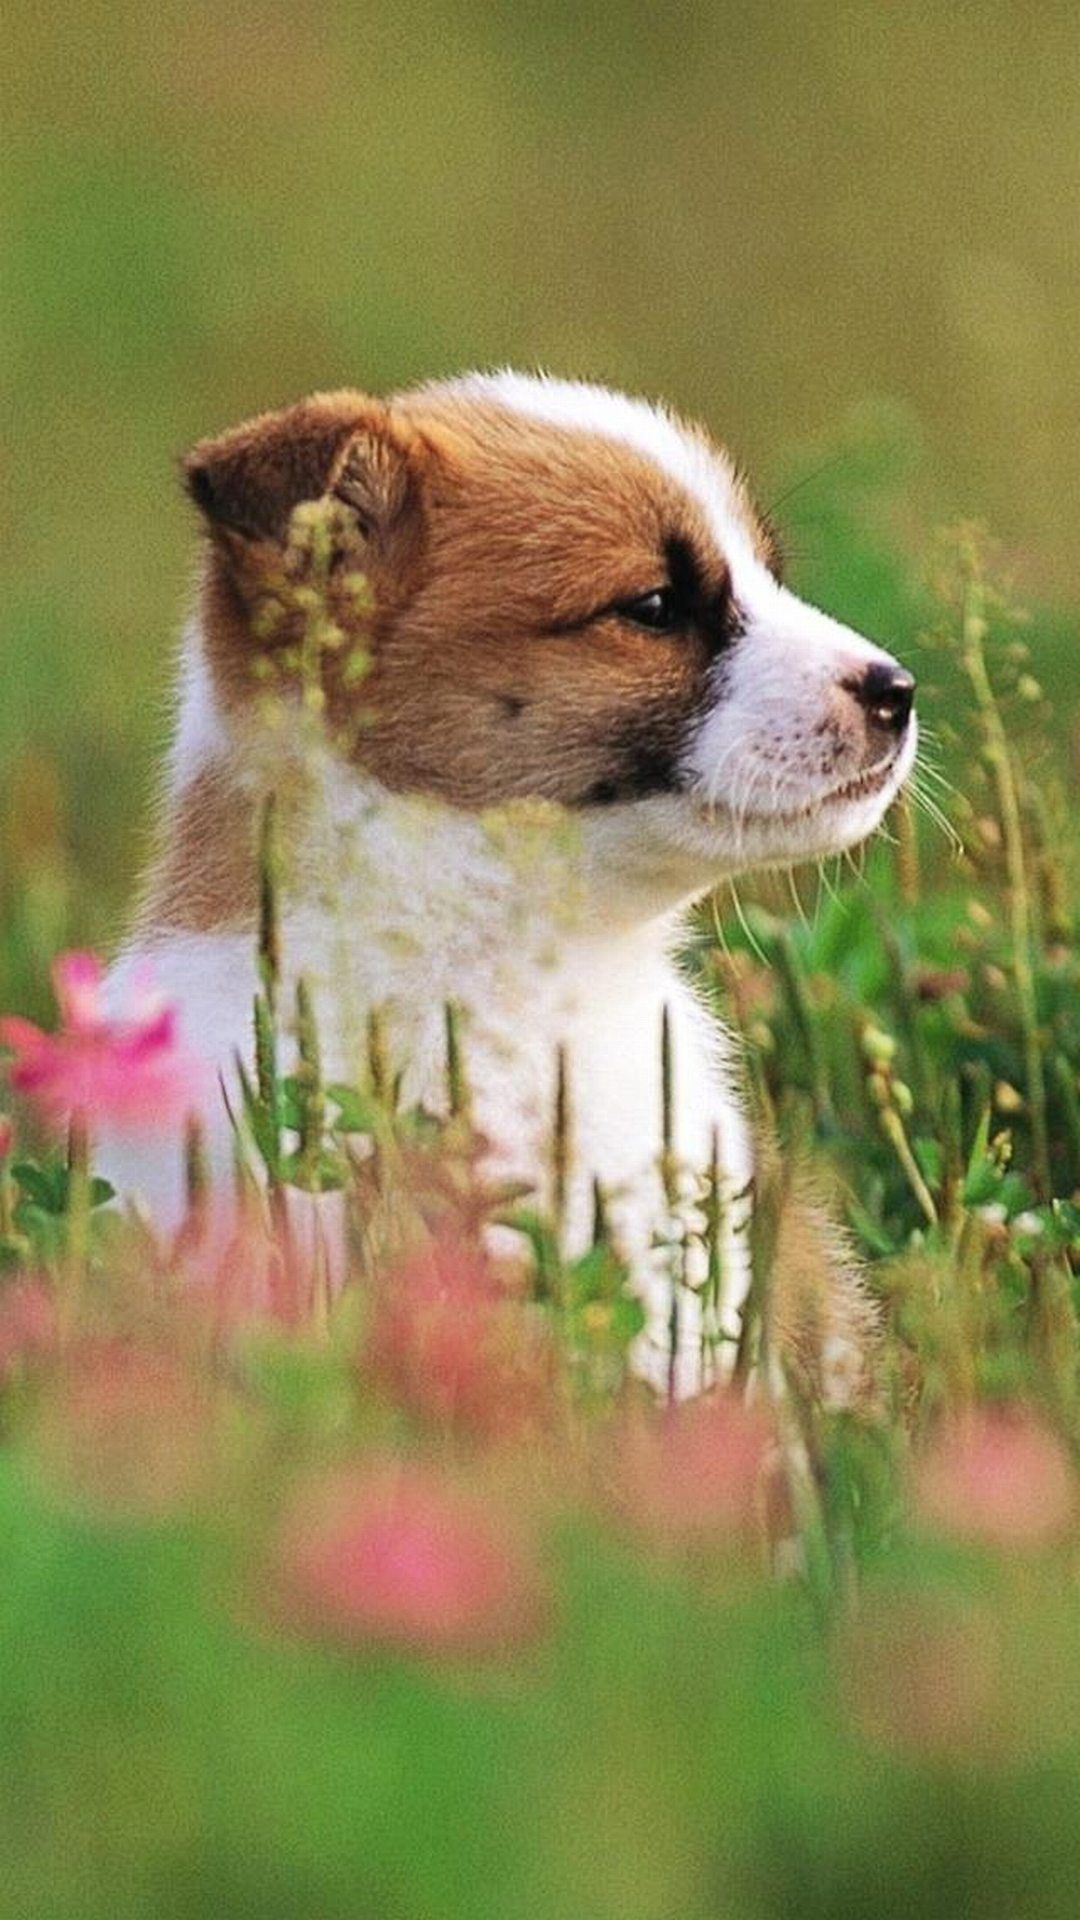 Puppy cute puppies wallpapers for iphone animals dog - Phone animal wallpapers ...